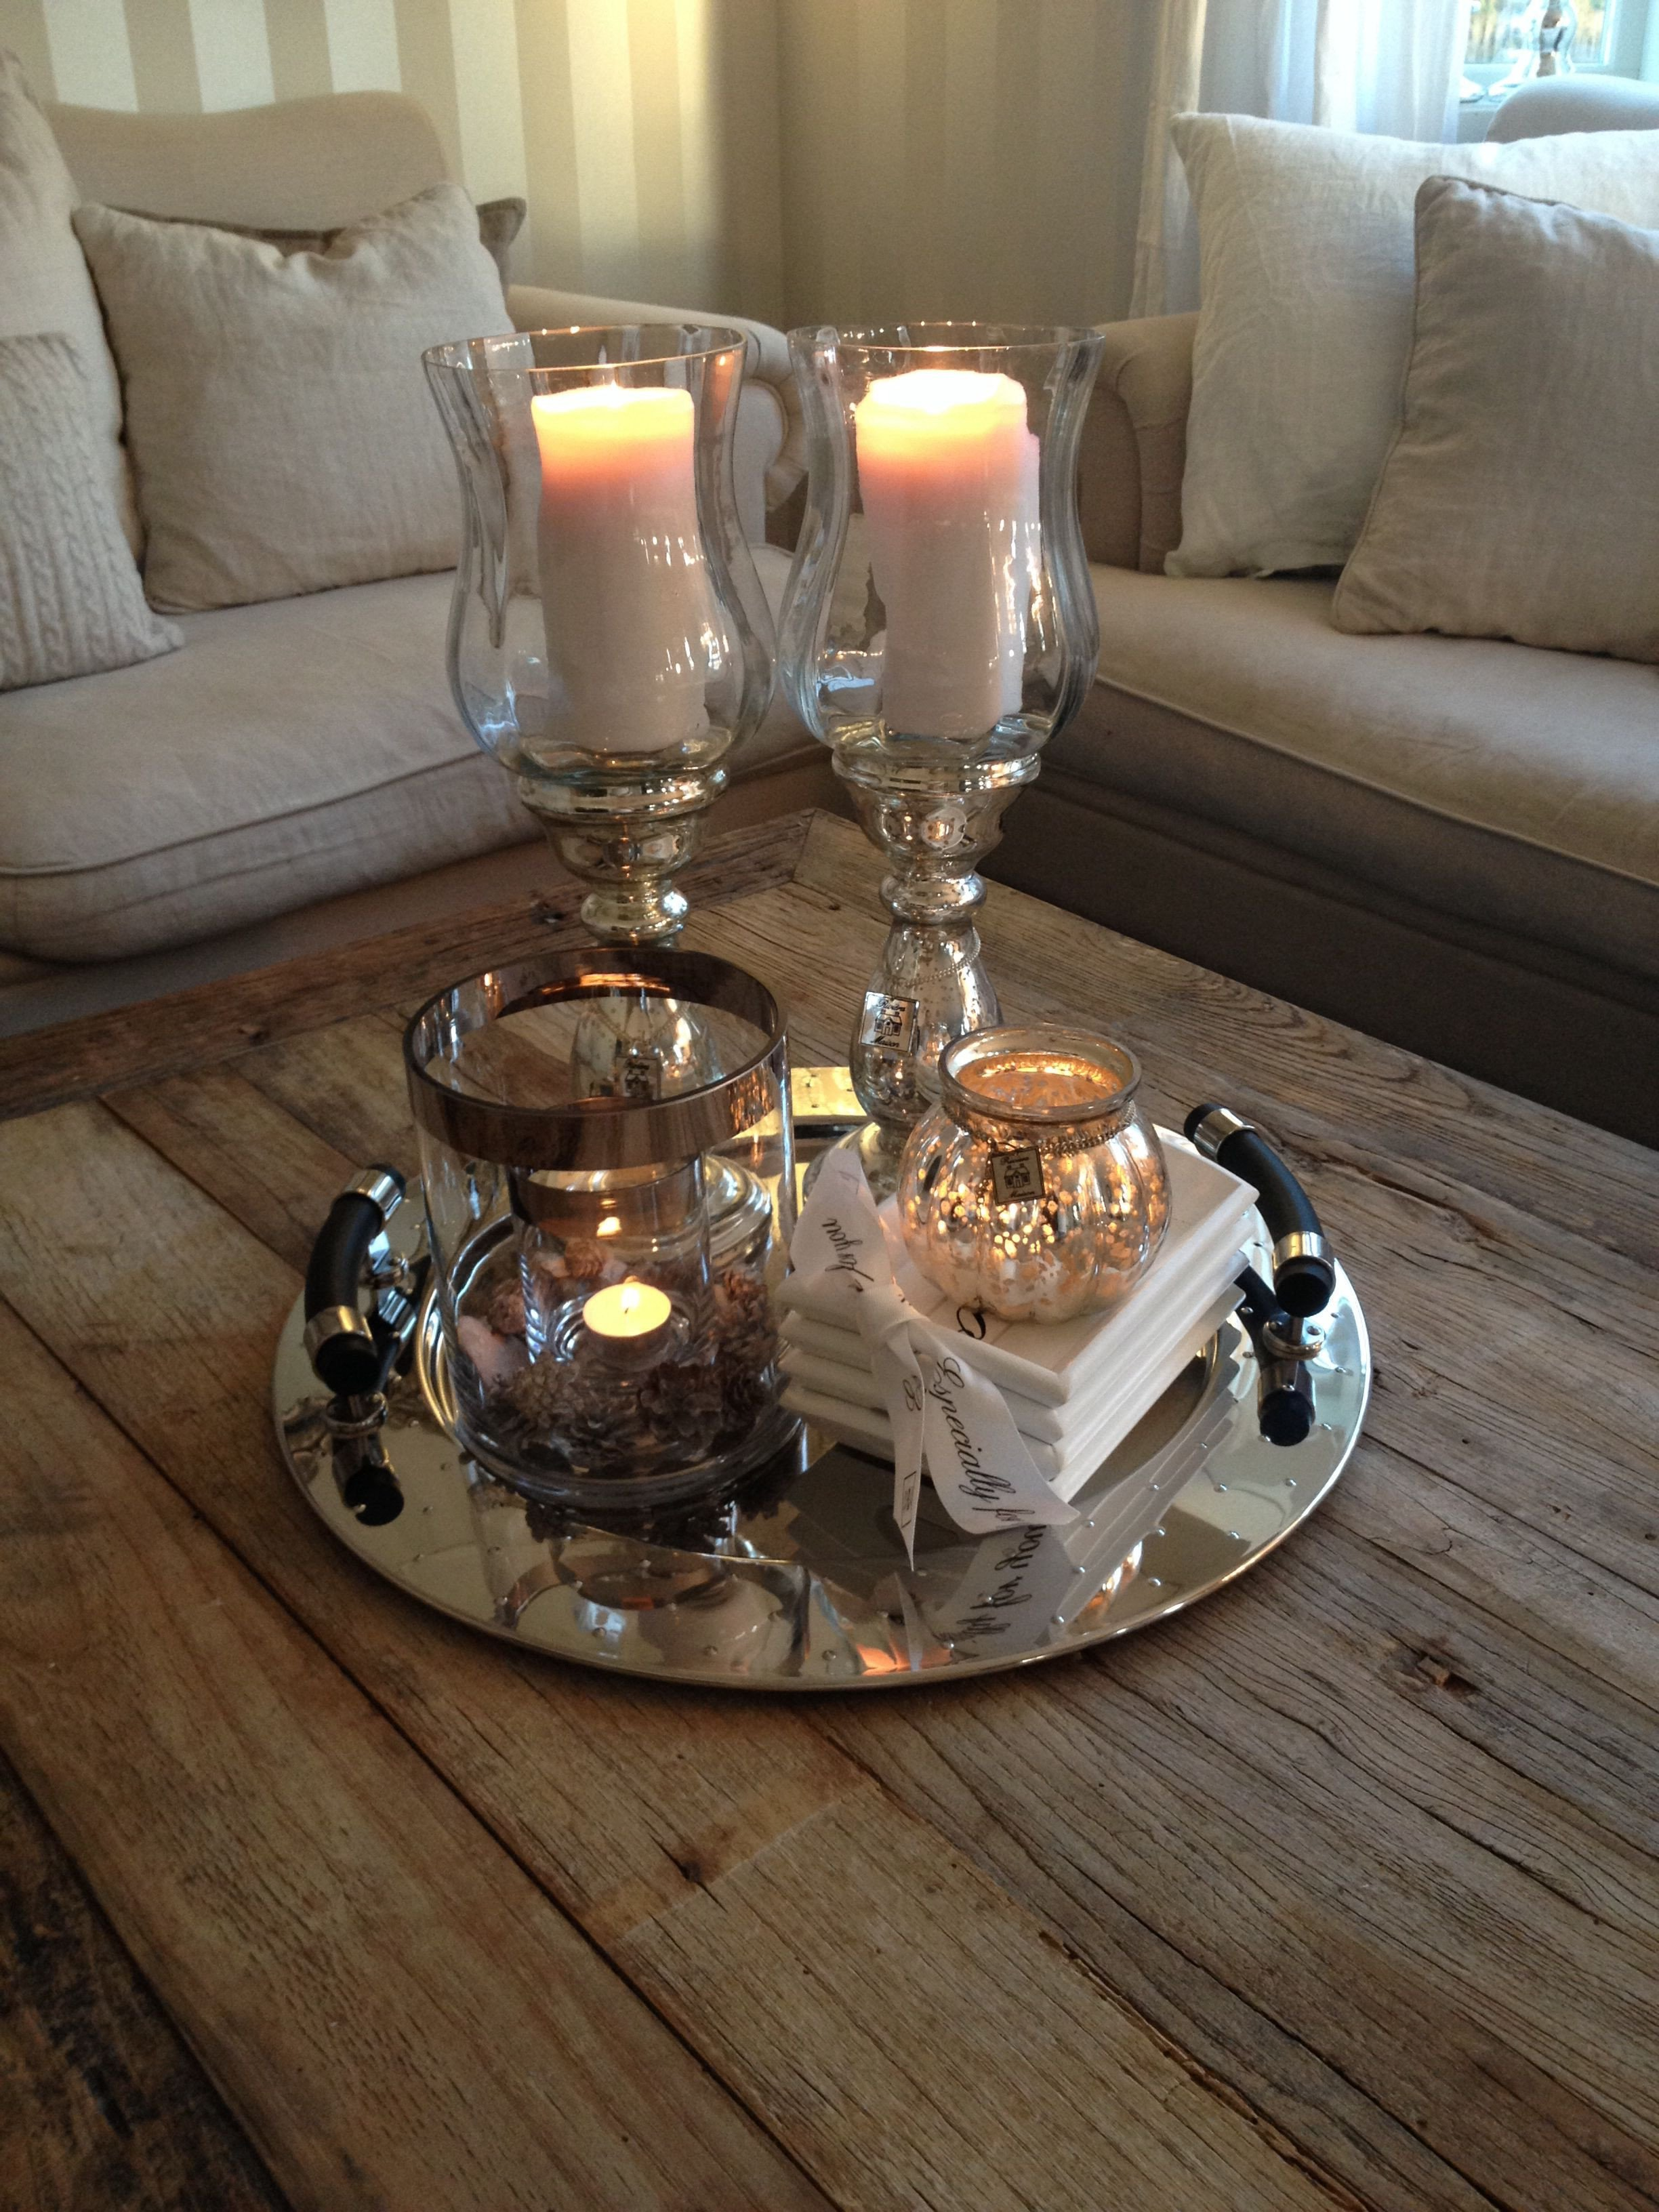 Candle Decor for Coffee Table New Create Multiple Tiers to Display Your Decor and Candles for A Nice Center Piece